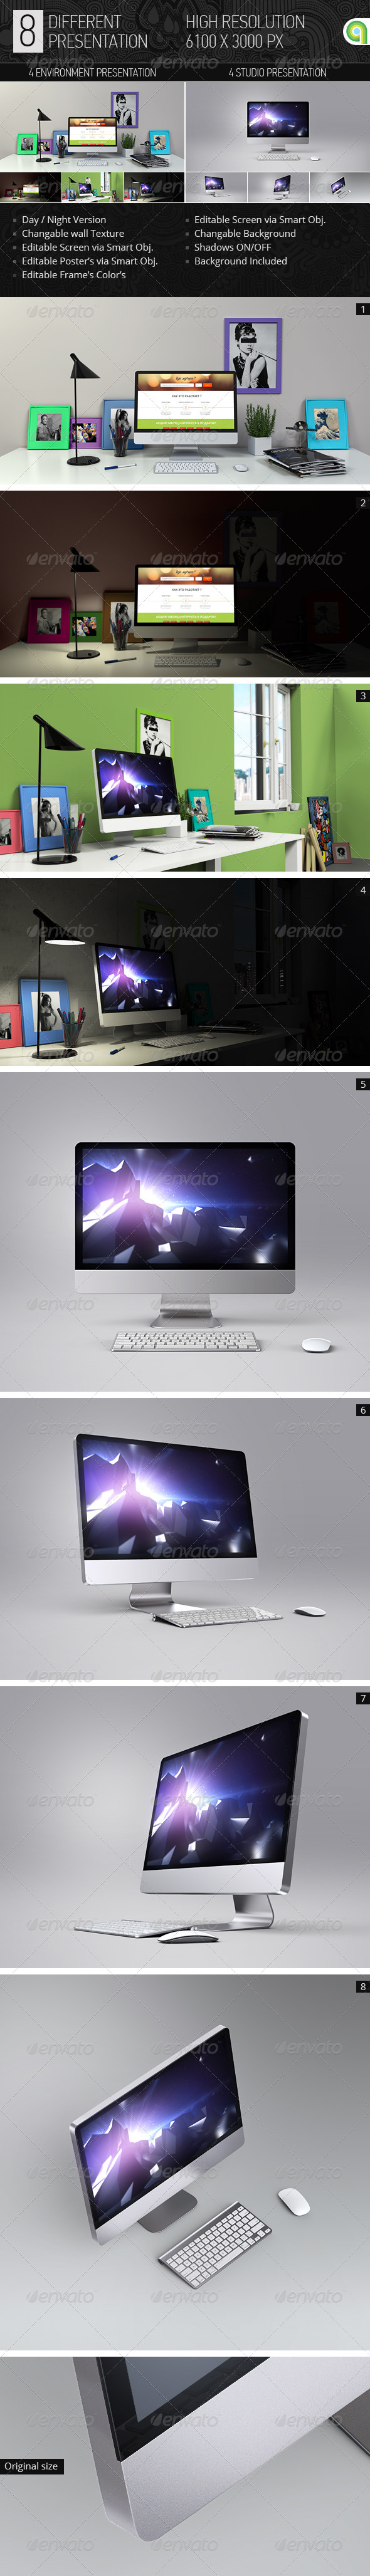 GraphicRiver Desktop & Screen Mock-up 7692287